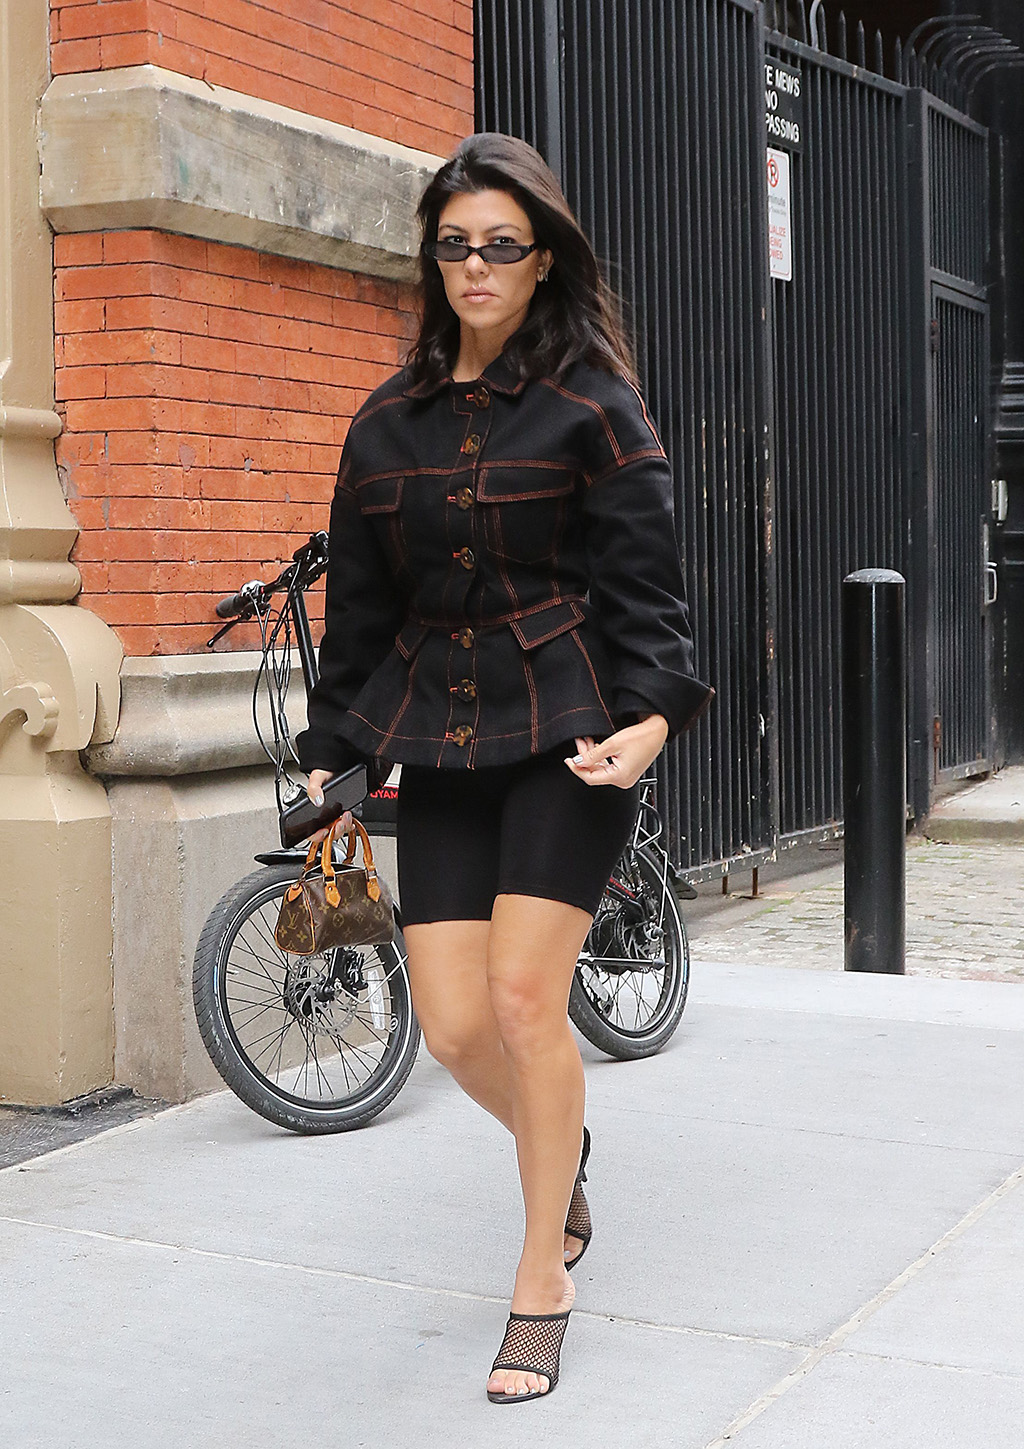 Kourtney KardashianKendall Jenner and Kourtney Kardashian out and about, New York, USA - 05 Jun 2018 WEARING YEEZY JACKET AND NAKED WARDROBE SHORTS SHOES BY YEEZY BAG BY LOUIS VUITTON